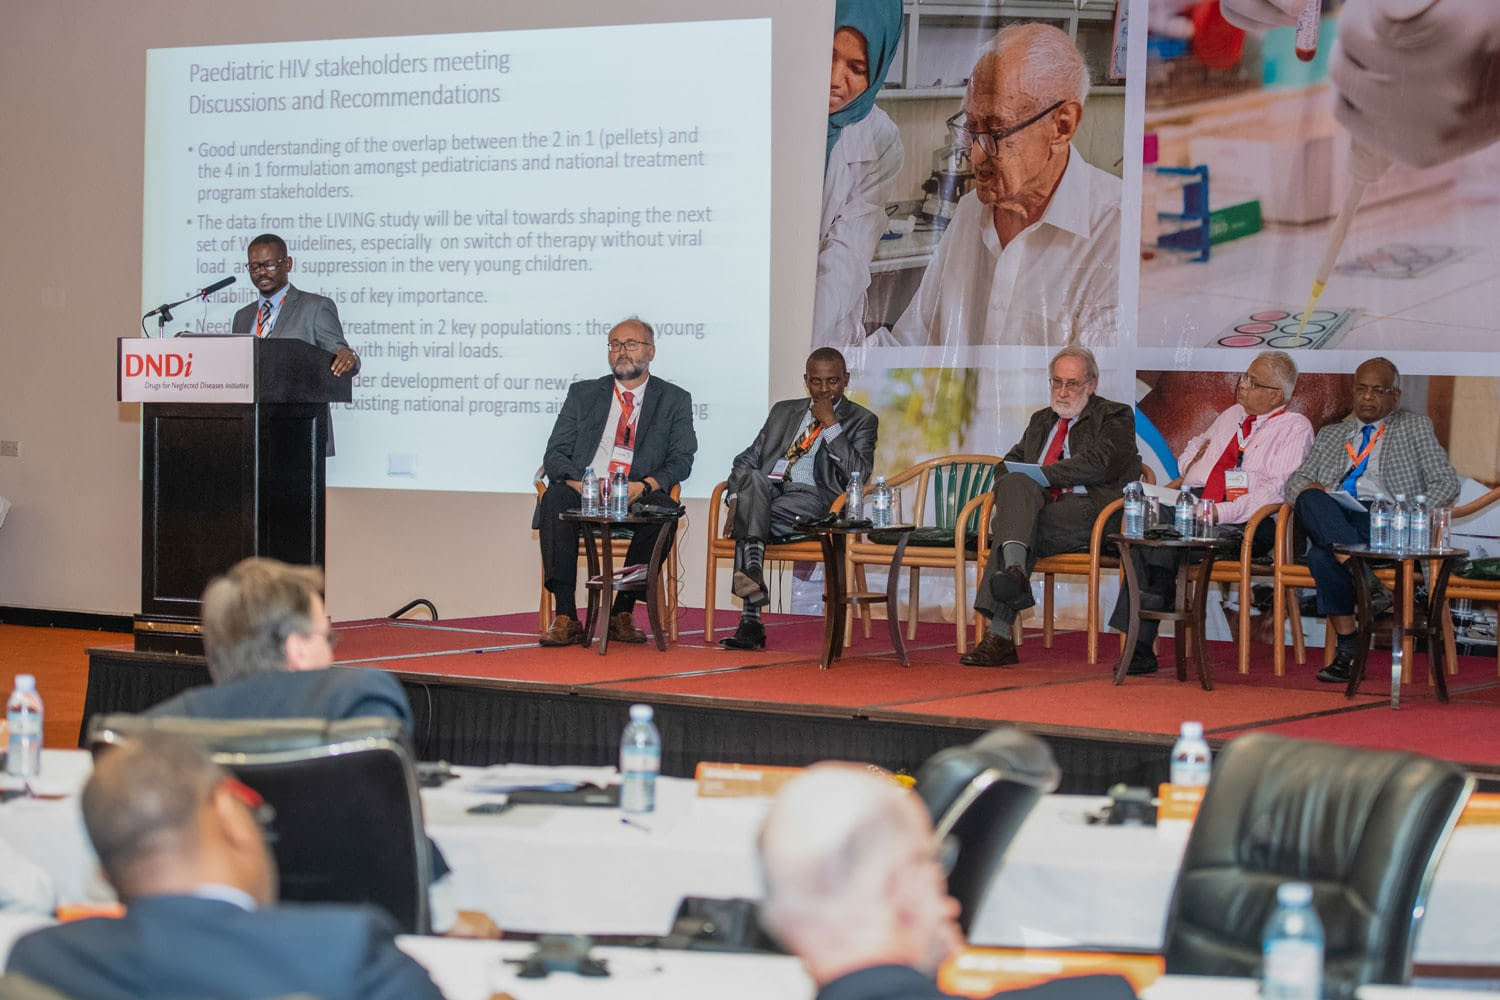 Dr Victor Mussime of Makerere University, Uganda, talks to participants about the Paediatric HIV Network, sharing the stage with, from left: Dr Graeme Bilbe, DNDi R&D Director; Dr Florent Mbo, Coordinator, HAT Platform; Dr Charles Mackenzie, Global Alliance for the Elimination of Lymphatic Filariasis; Dr Rashmi Barbhaiya, DNDi Scientific Advisory Committee; and Prof. Asrat Hailu Mekuria, Addis Ababa University, Ethiopia.